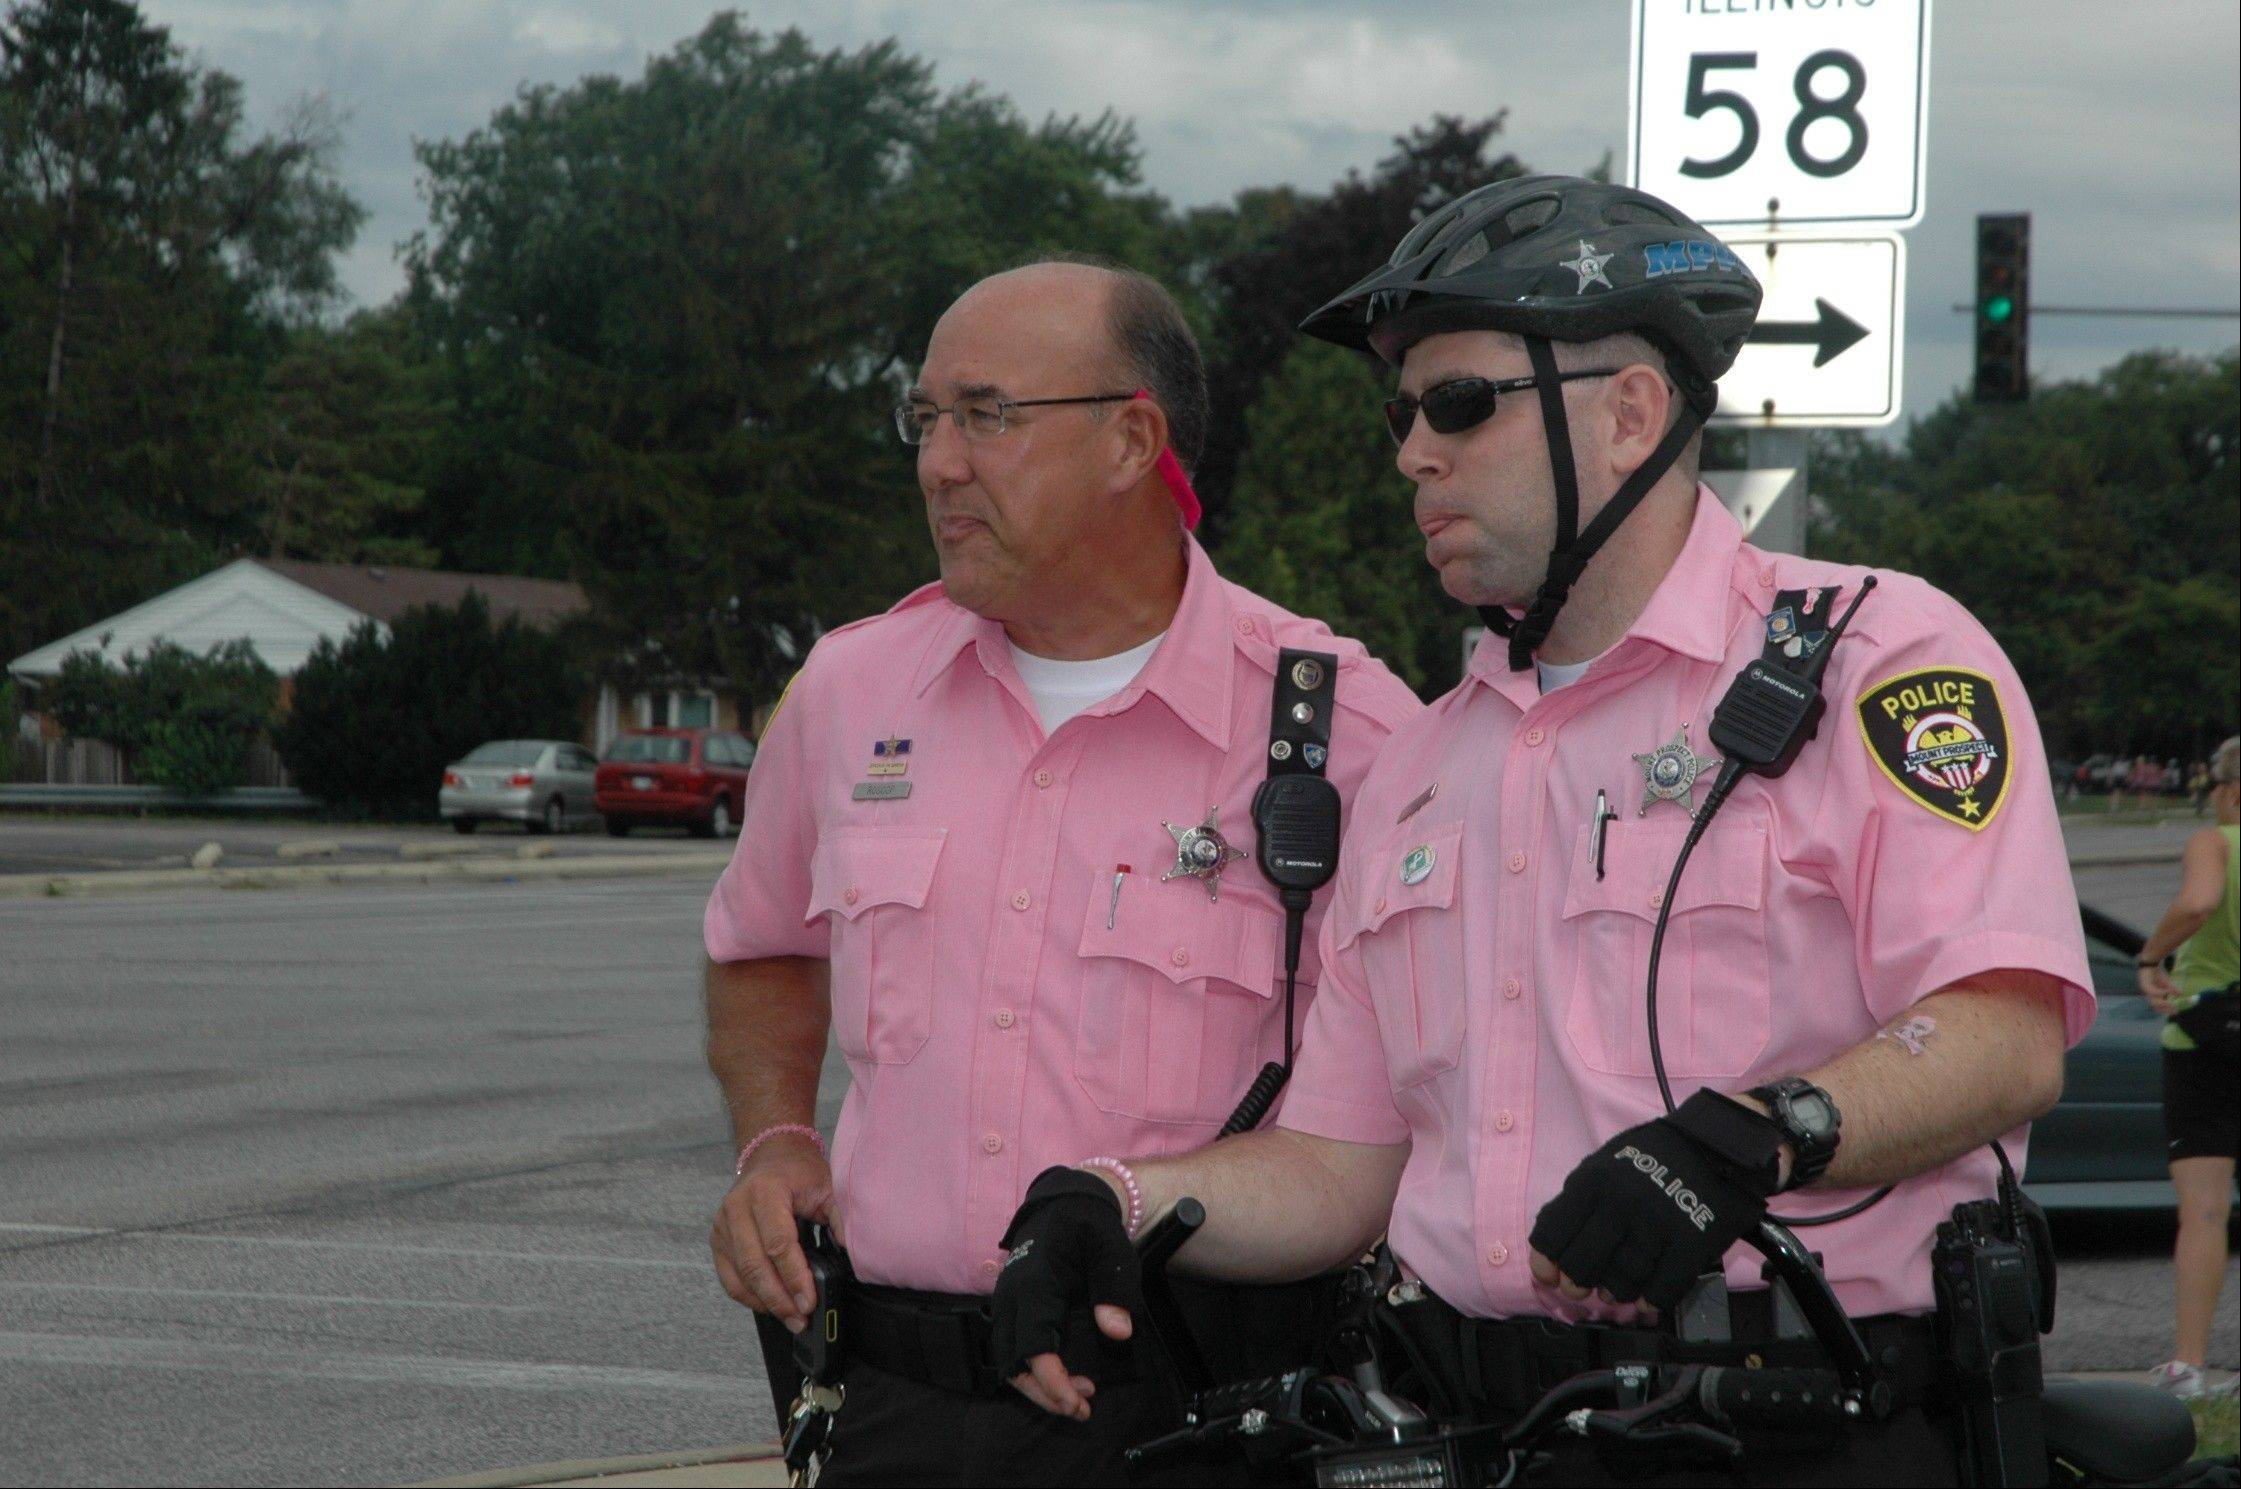 Mount Prospect police working the Komen Walk each year are usually decked out for the occasion.